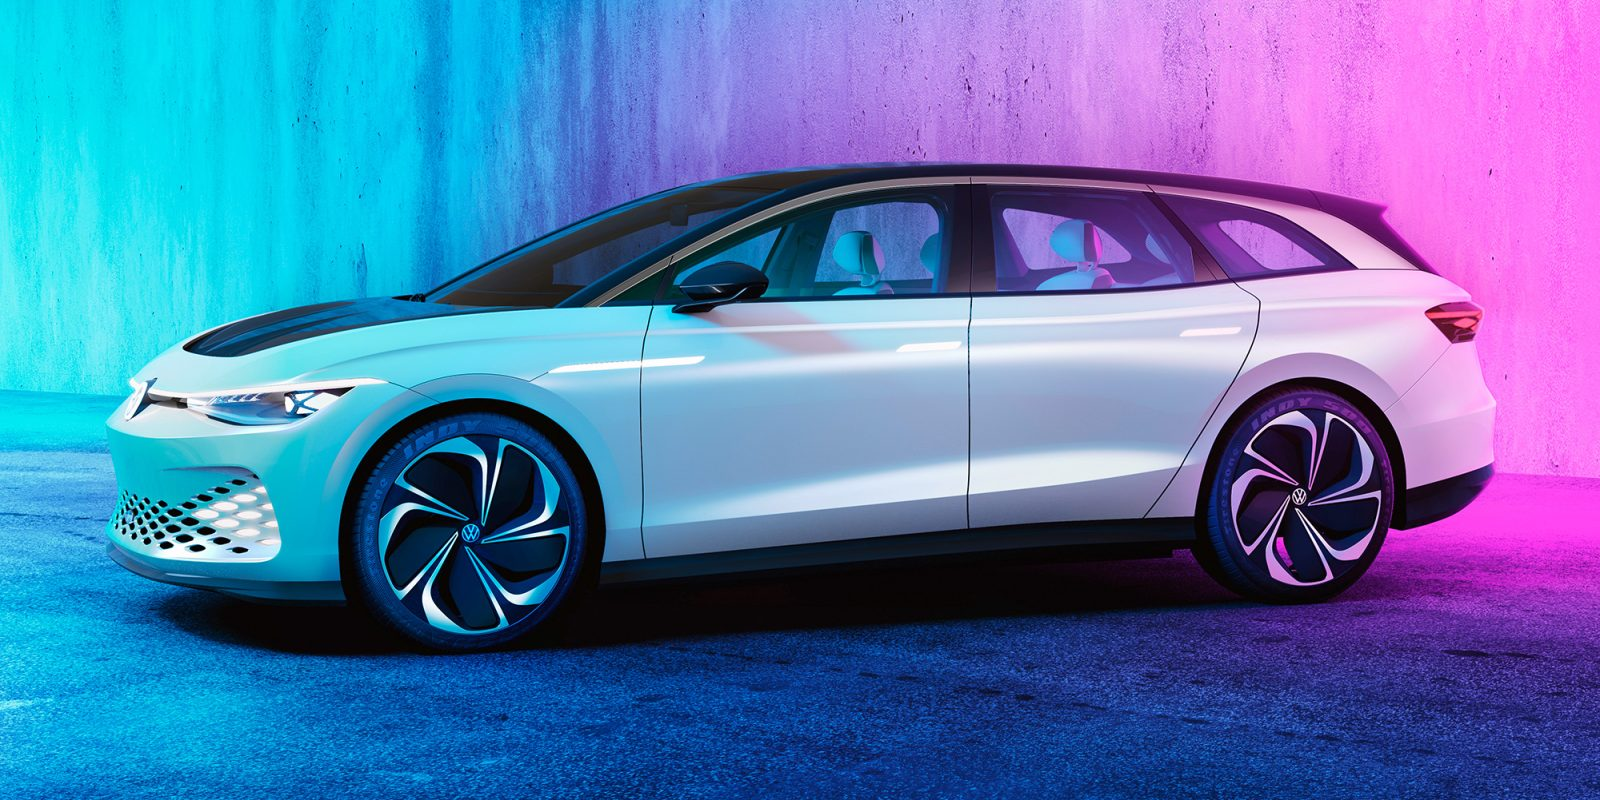 LA Auto Show: Volkswagen says EV tipping point is in sight